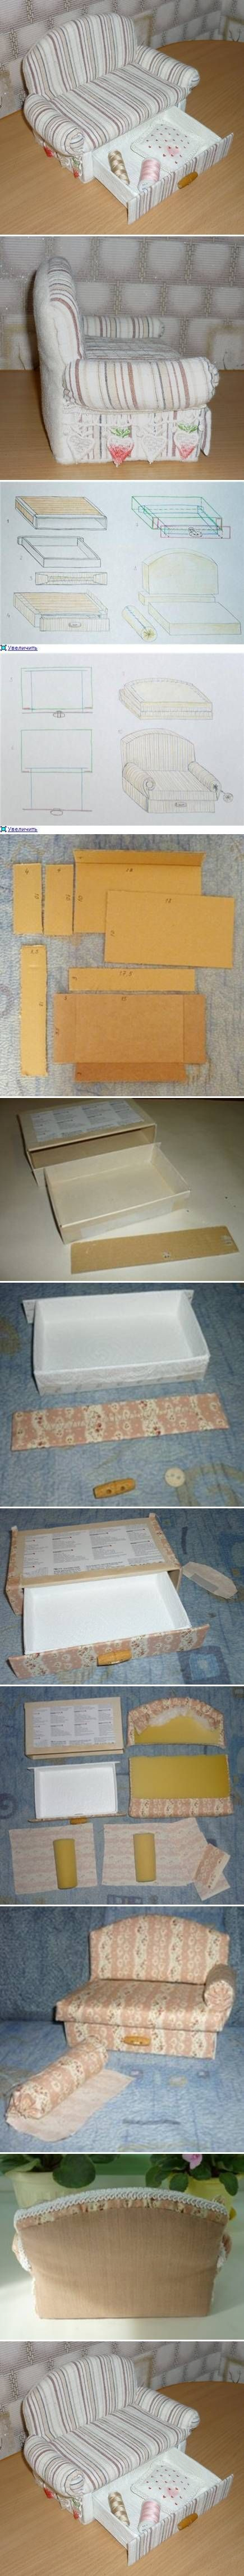 DIY Cardboard Sofa with Drawer DIY Projects | UsefulDIY.com Follow Us on Facebook ==> http://www.facebook.com/UsefulDiy